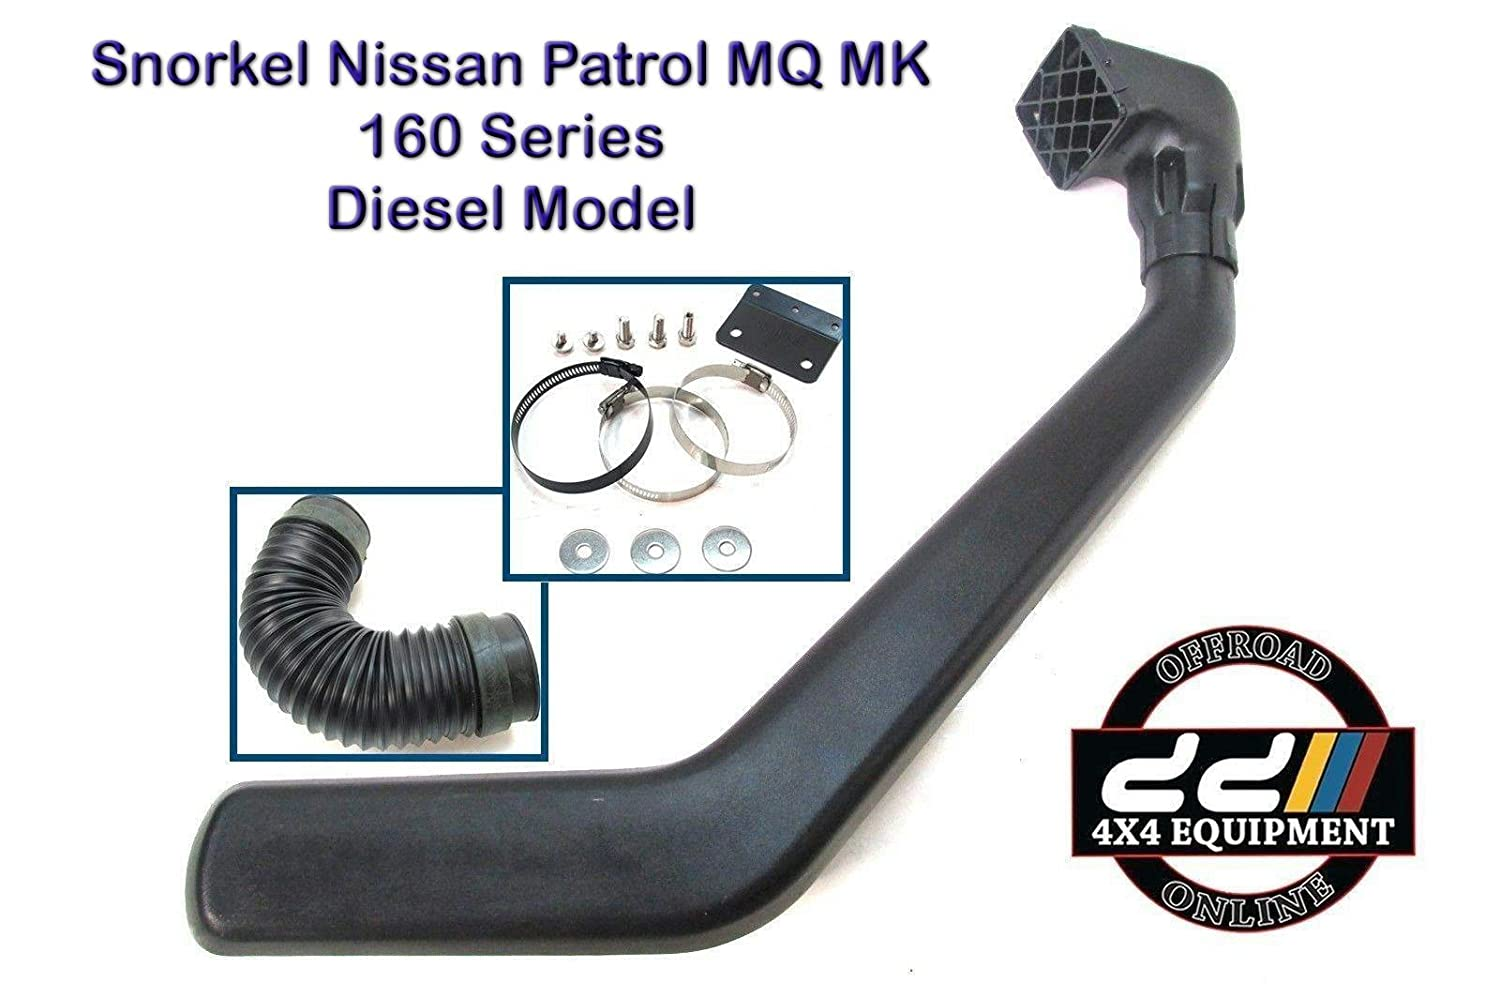 Amazon.com: New 4x4 Off Road Snorkel Kit Fits Nissan Patrol MQ MK 160 Series SD33 Diesel: Automotive